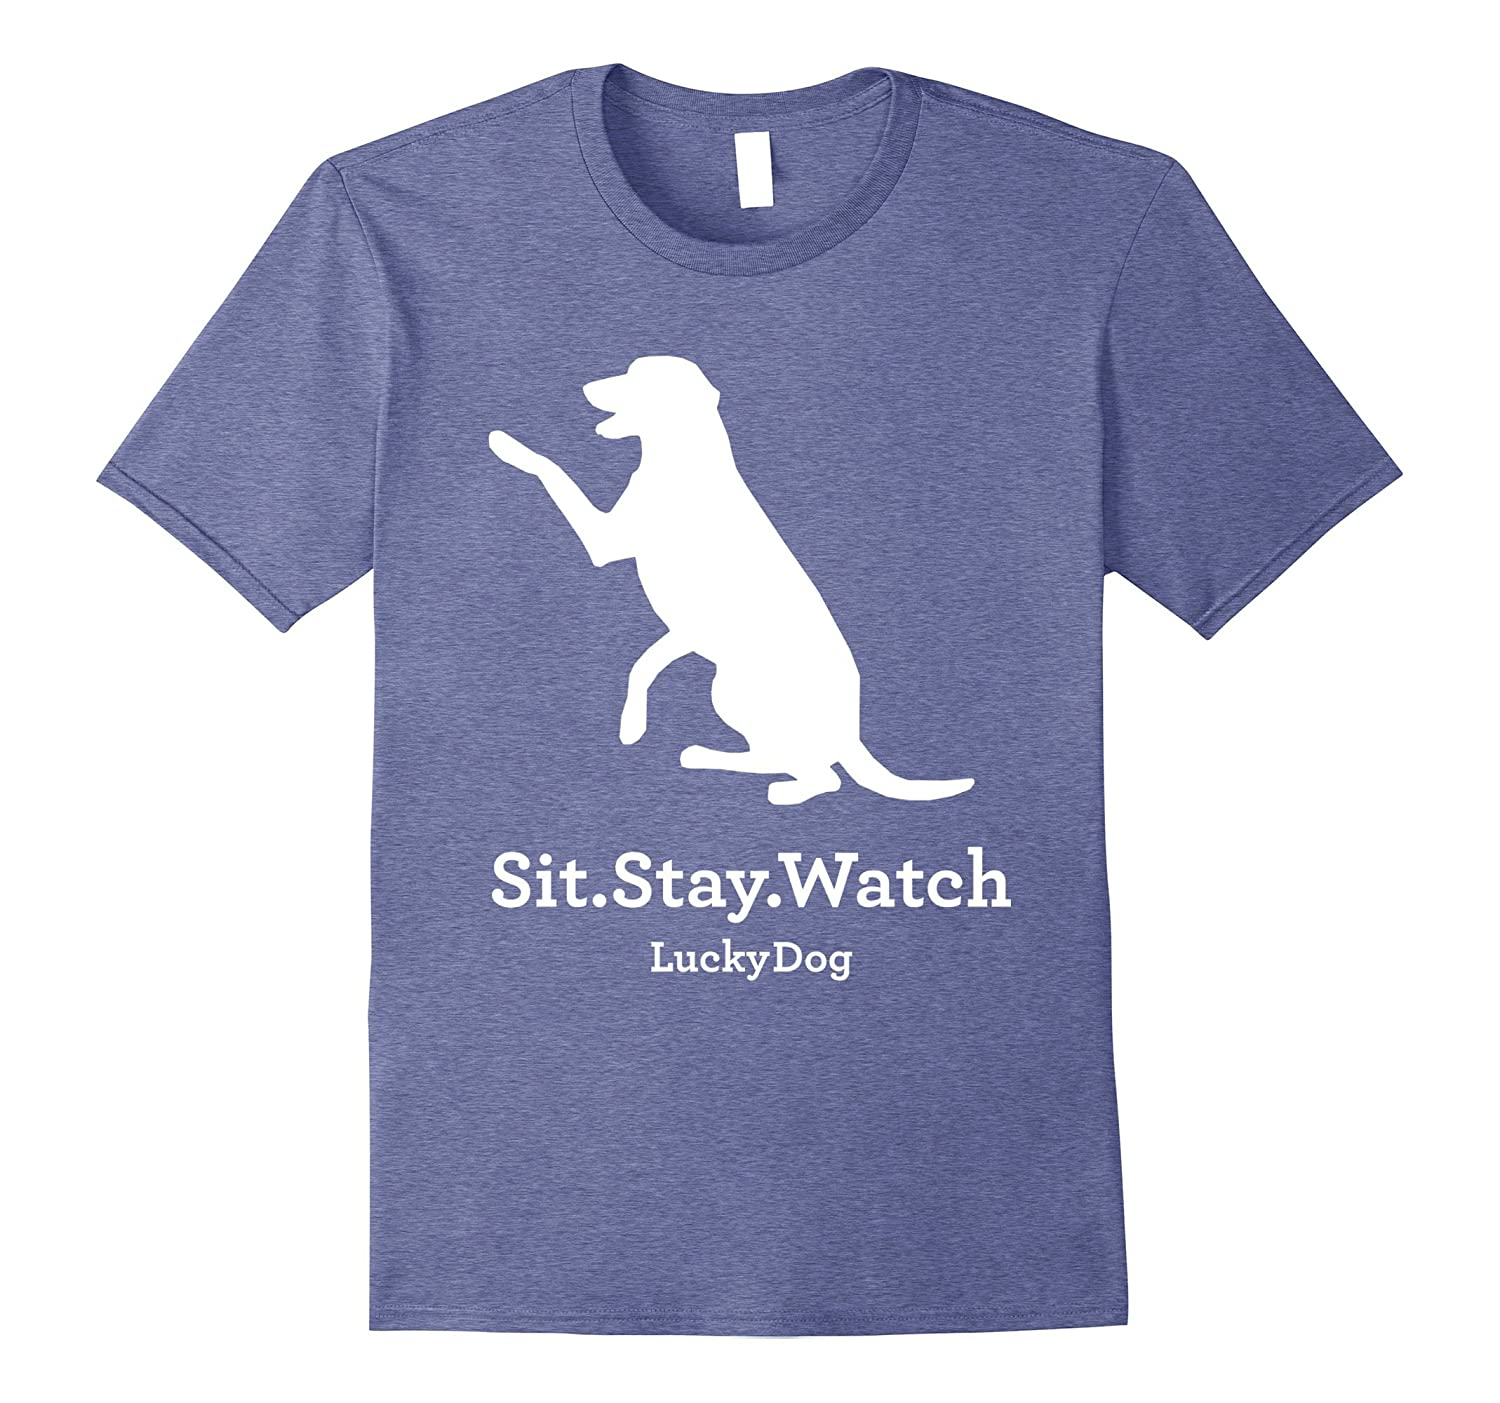 Lucky Dog Sit.Stay.Watch. T-Shirt-AZP